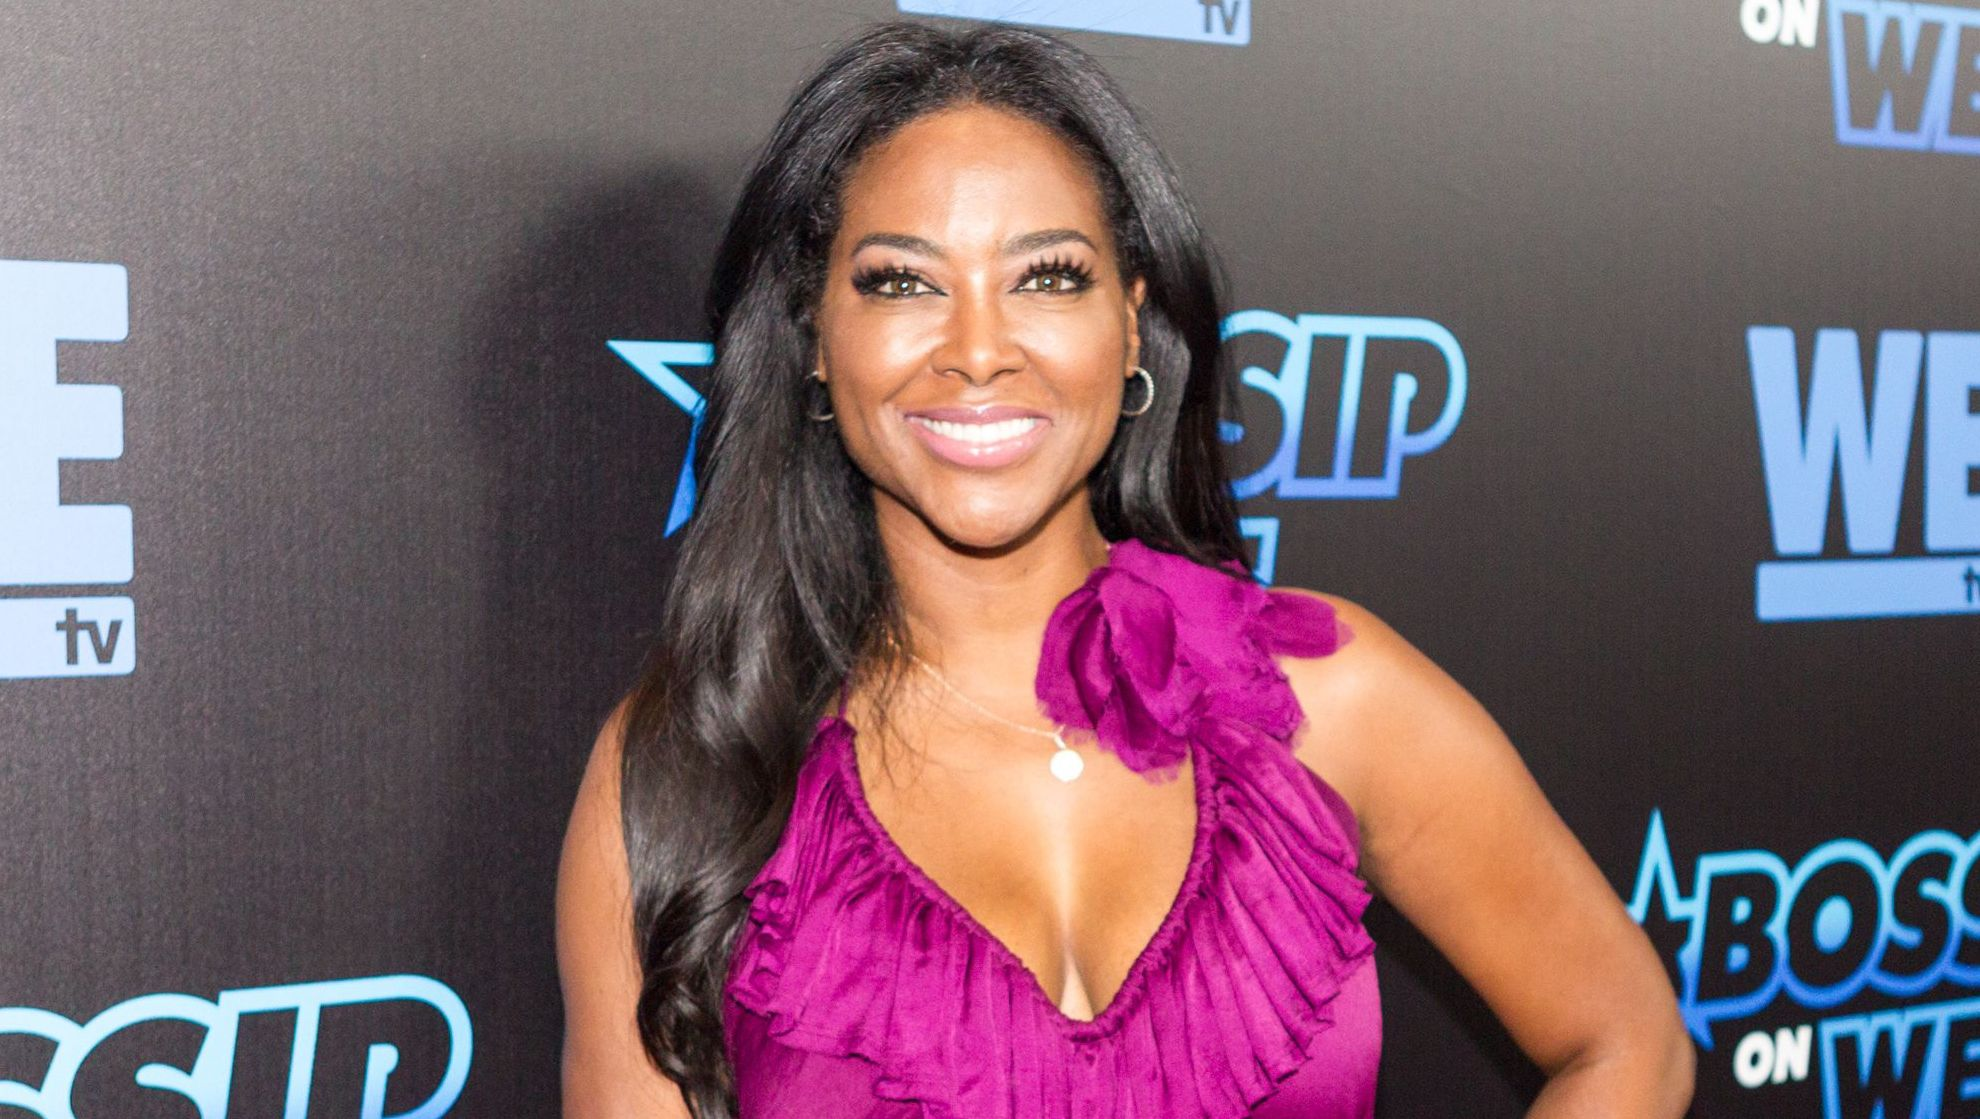 Kenya Moore Shares Gorgeous Photo Featuring Brooklyn Daly